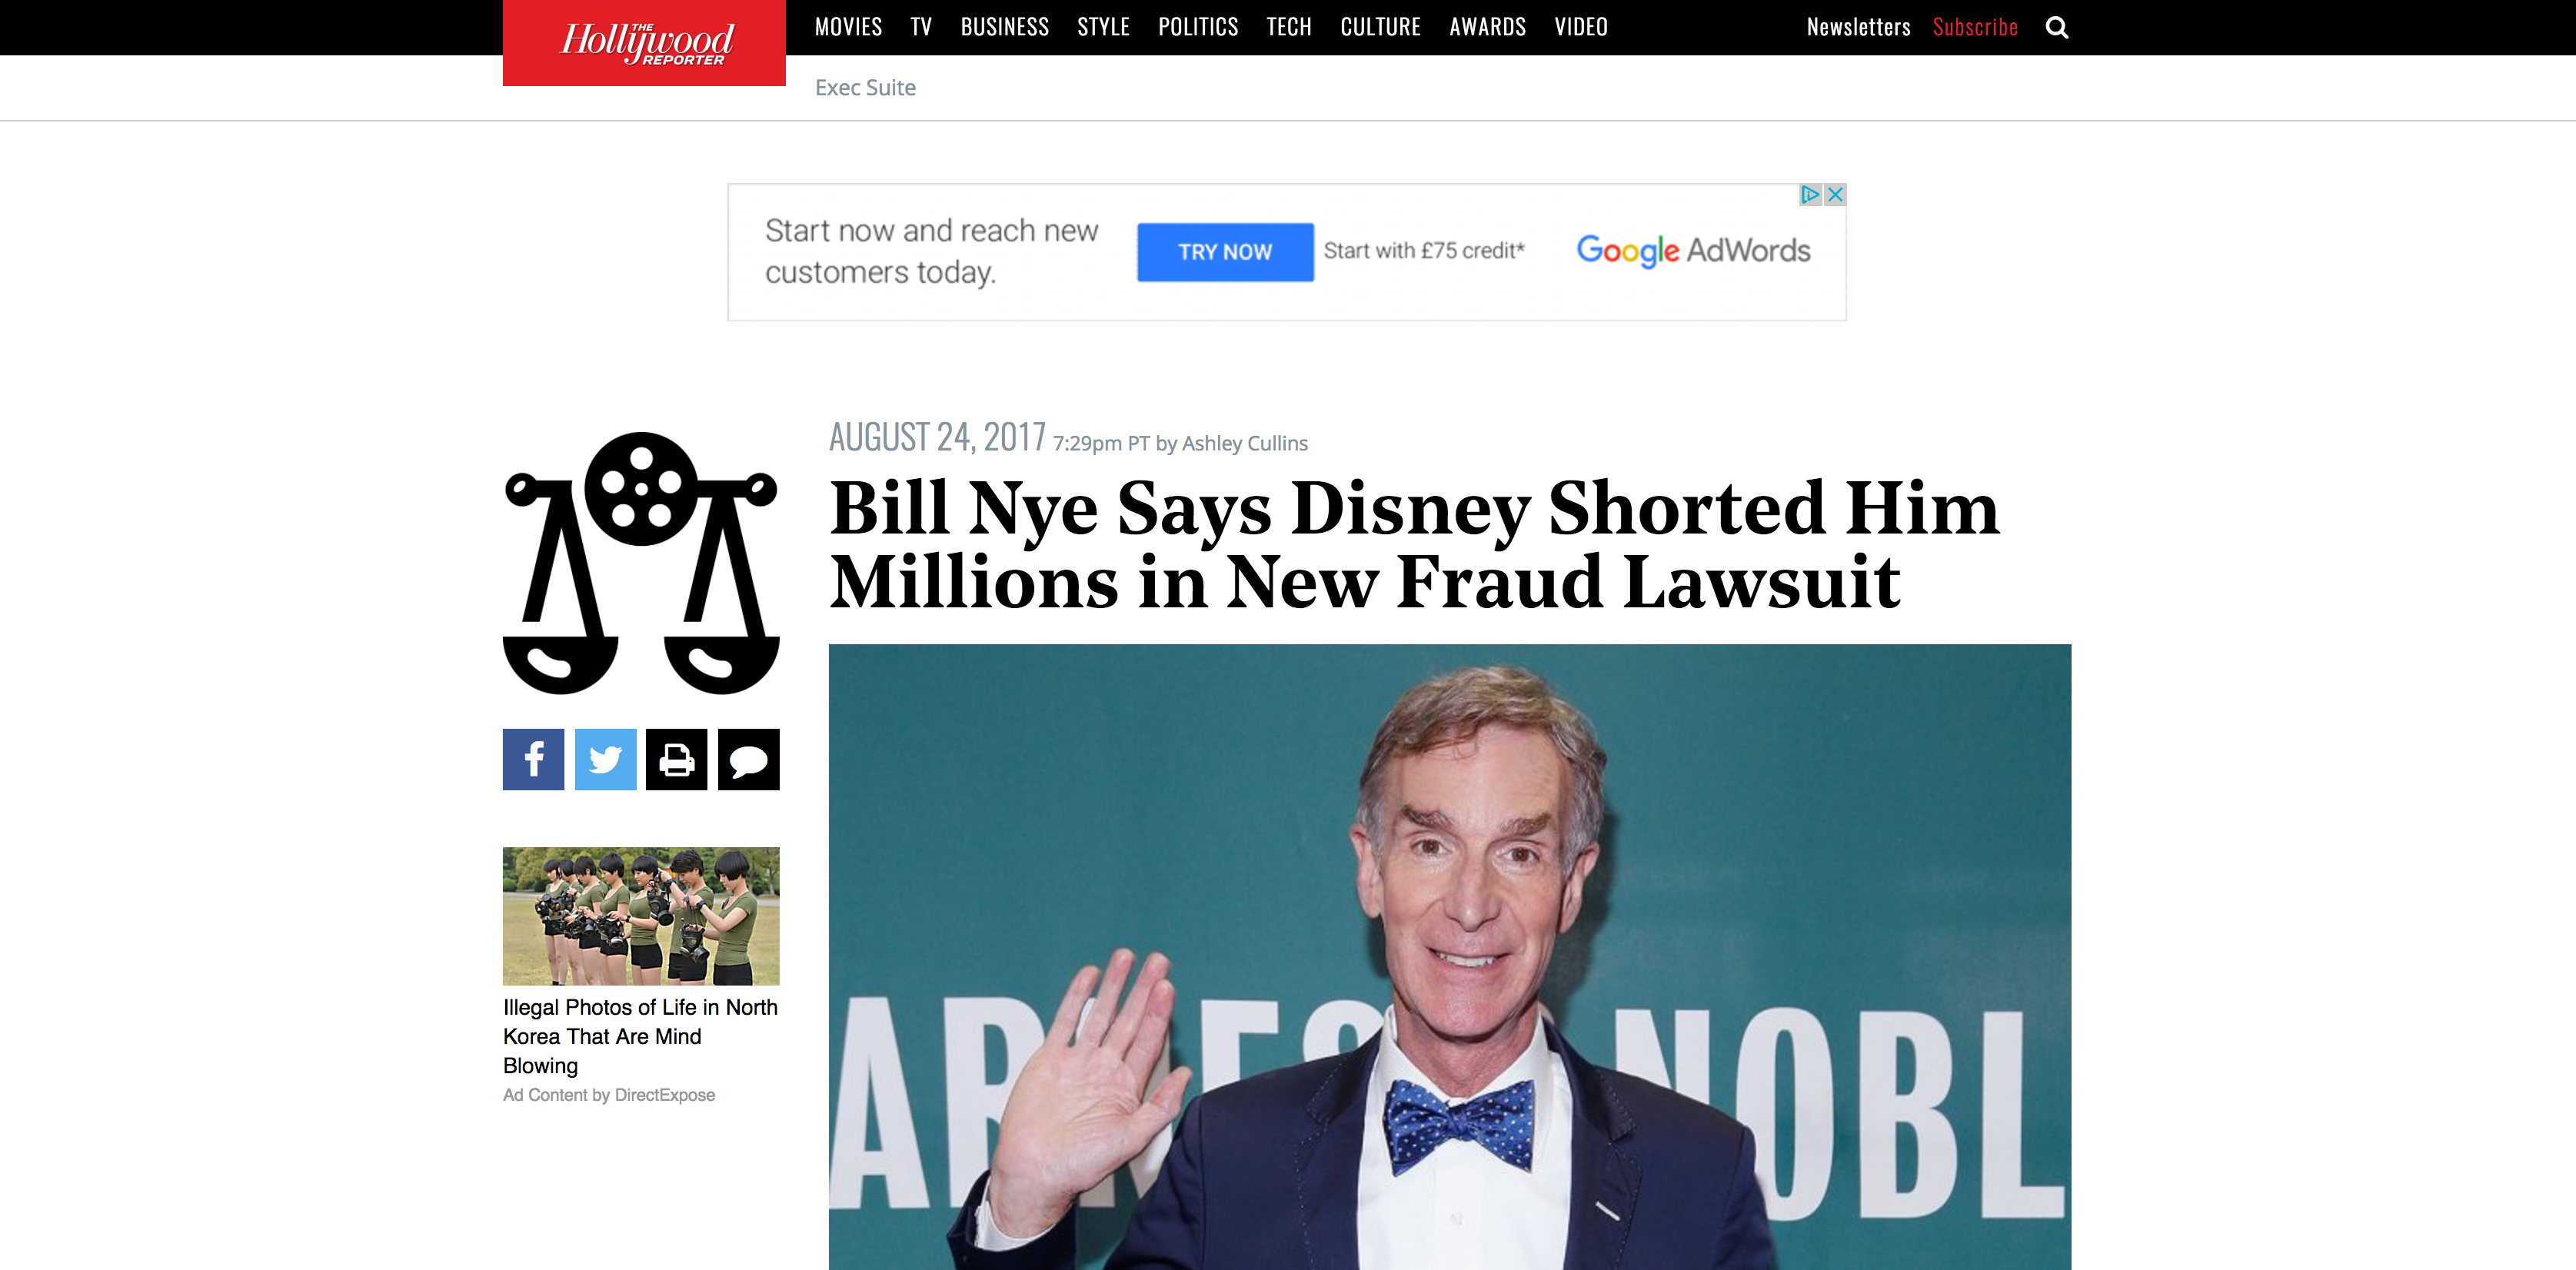 Fairness Rocks News Bill Nye Says Disney Shorted Him Millions in New Fraud Lawsuit